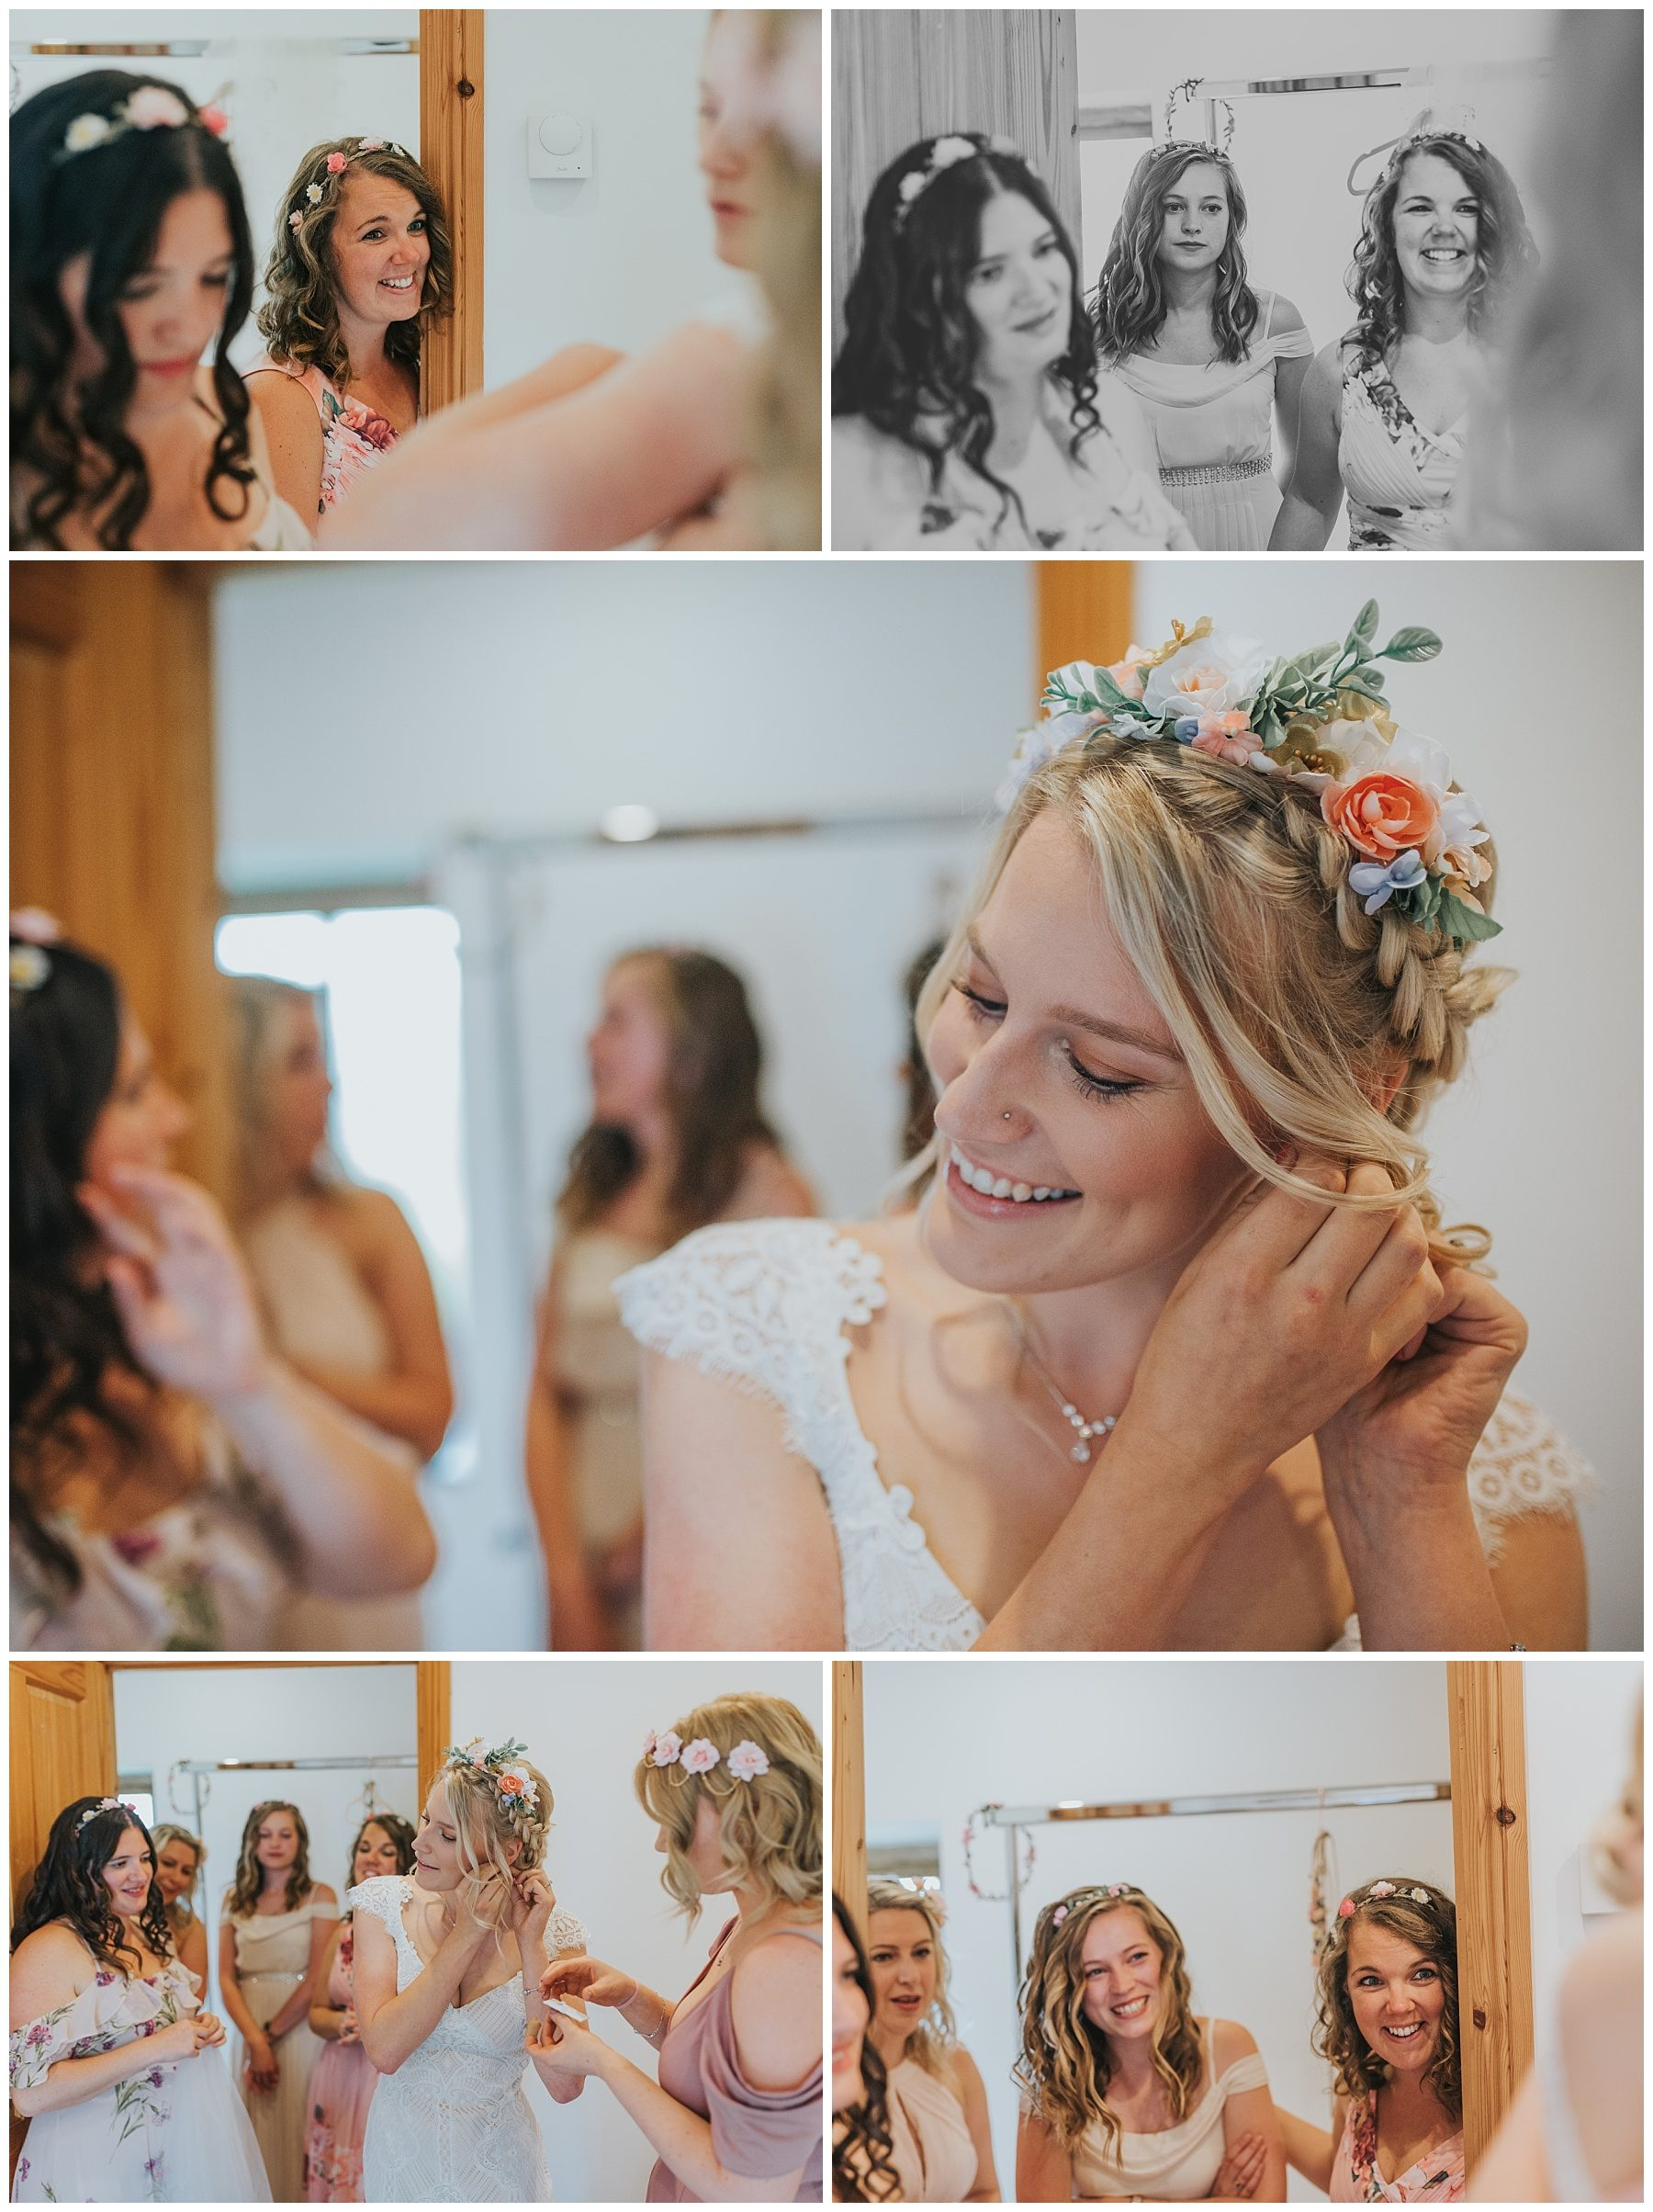 Bride putting on dress with bridesmaids watching